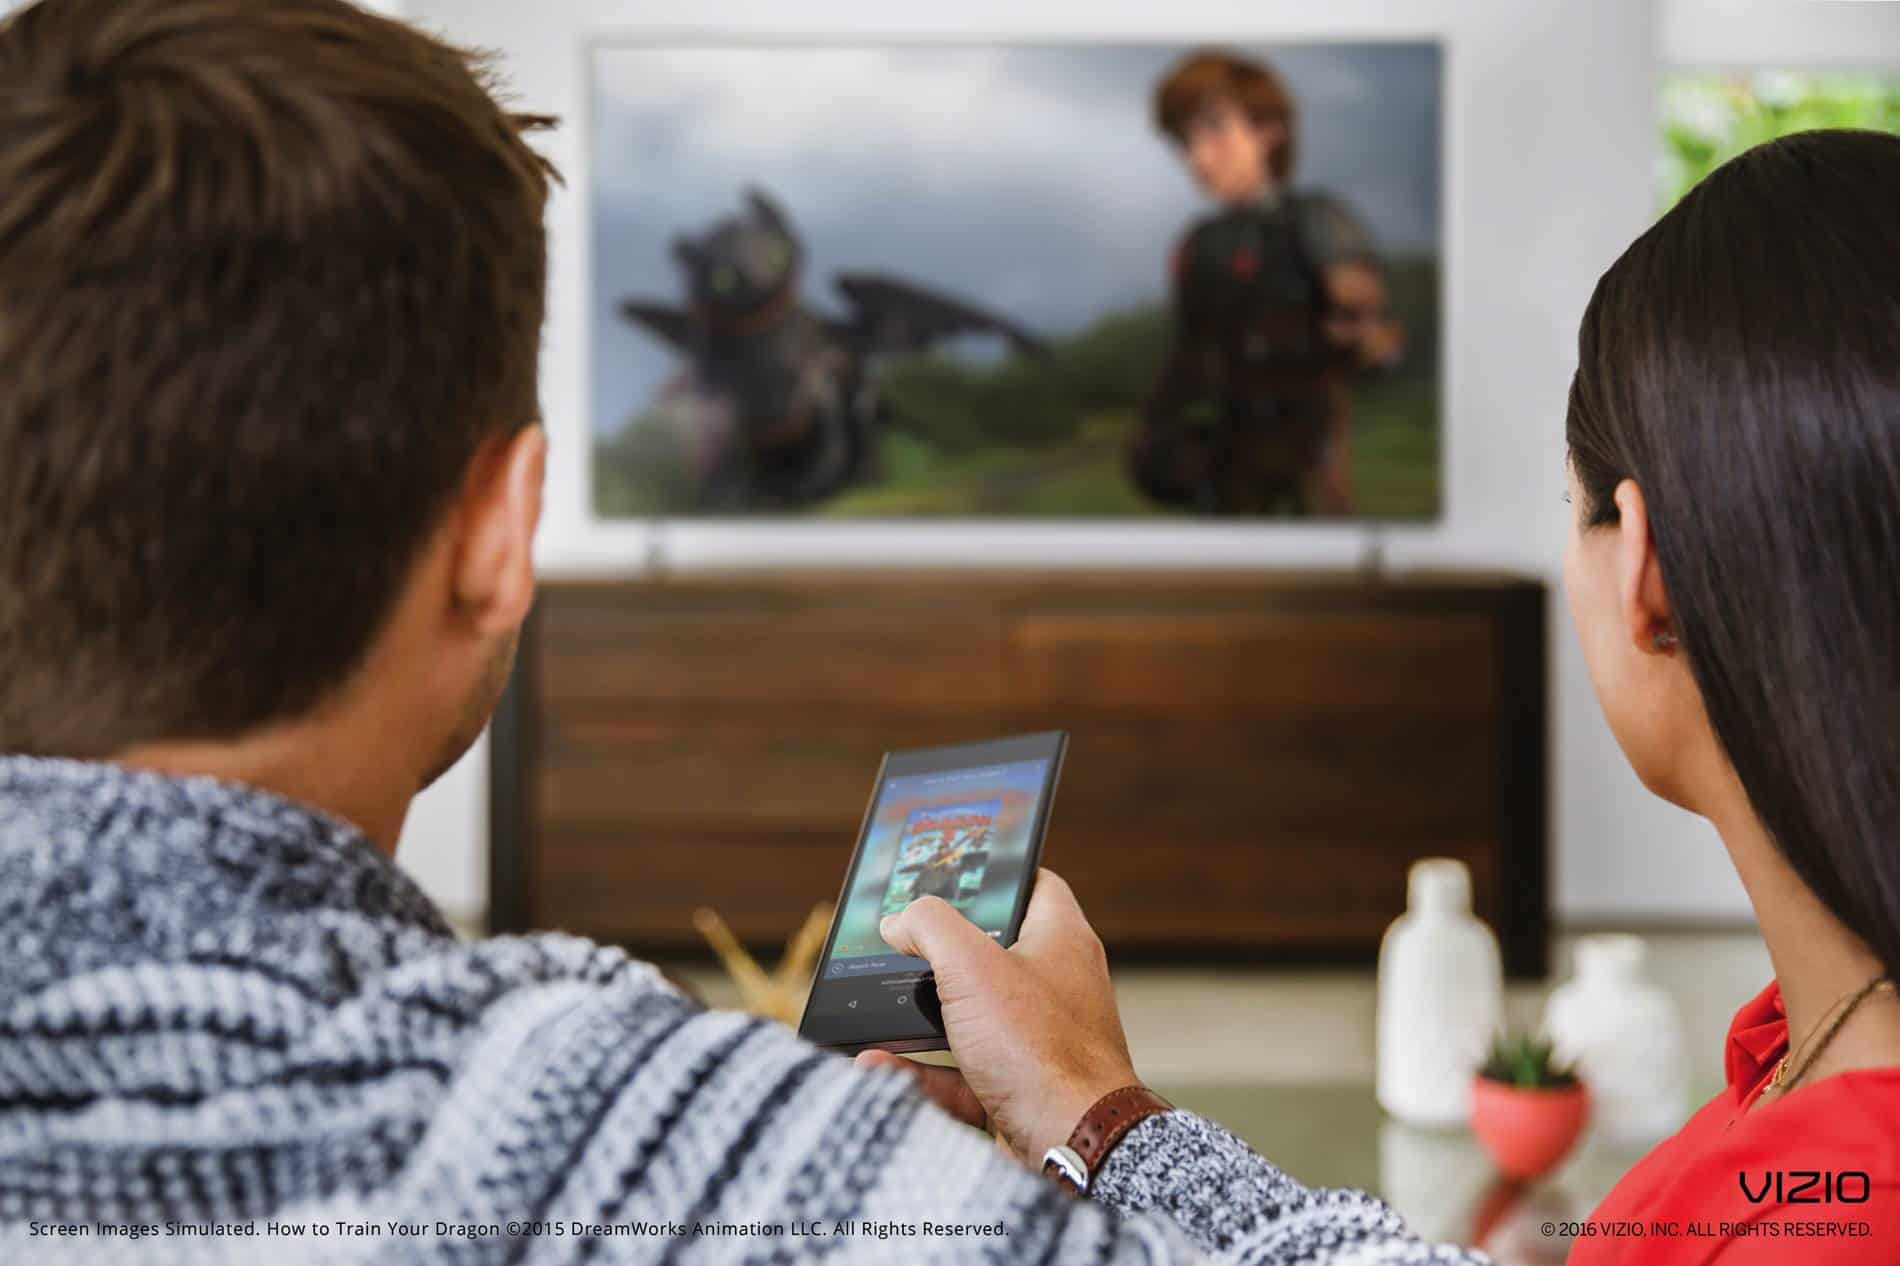 We Had Heard Not Too Long Ago, That Google And Vizio Were Working On  Bringing How To Train Your Dragon Cast